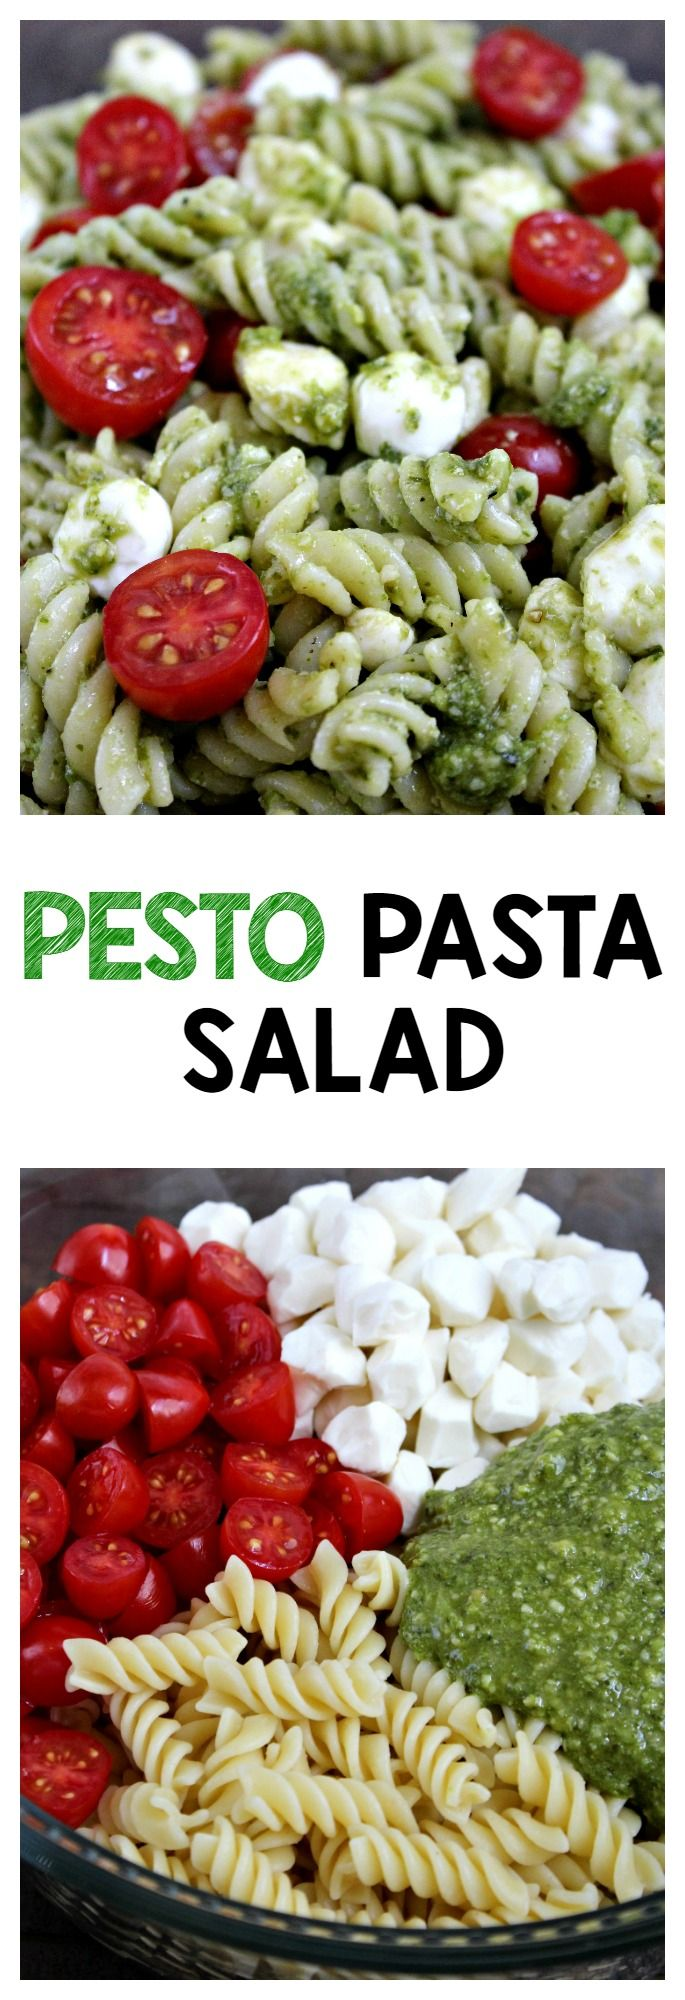 Pesto Pasta Salad is the perfect quick and tasty side dish! Made with flavorful pesto, spiral noodles, fresh mozzarella and juicy cherry tomatoes. (Pesto Pasta Recipes)